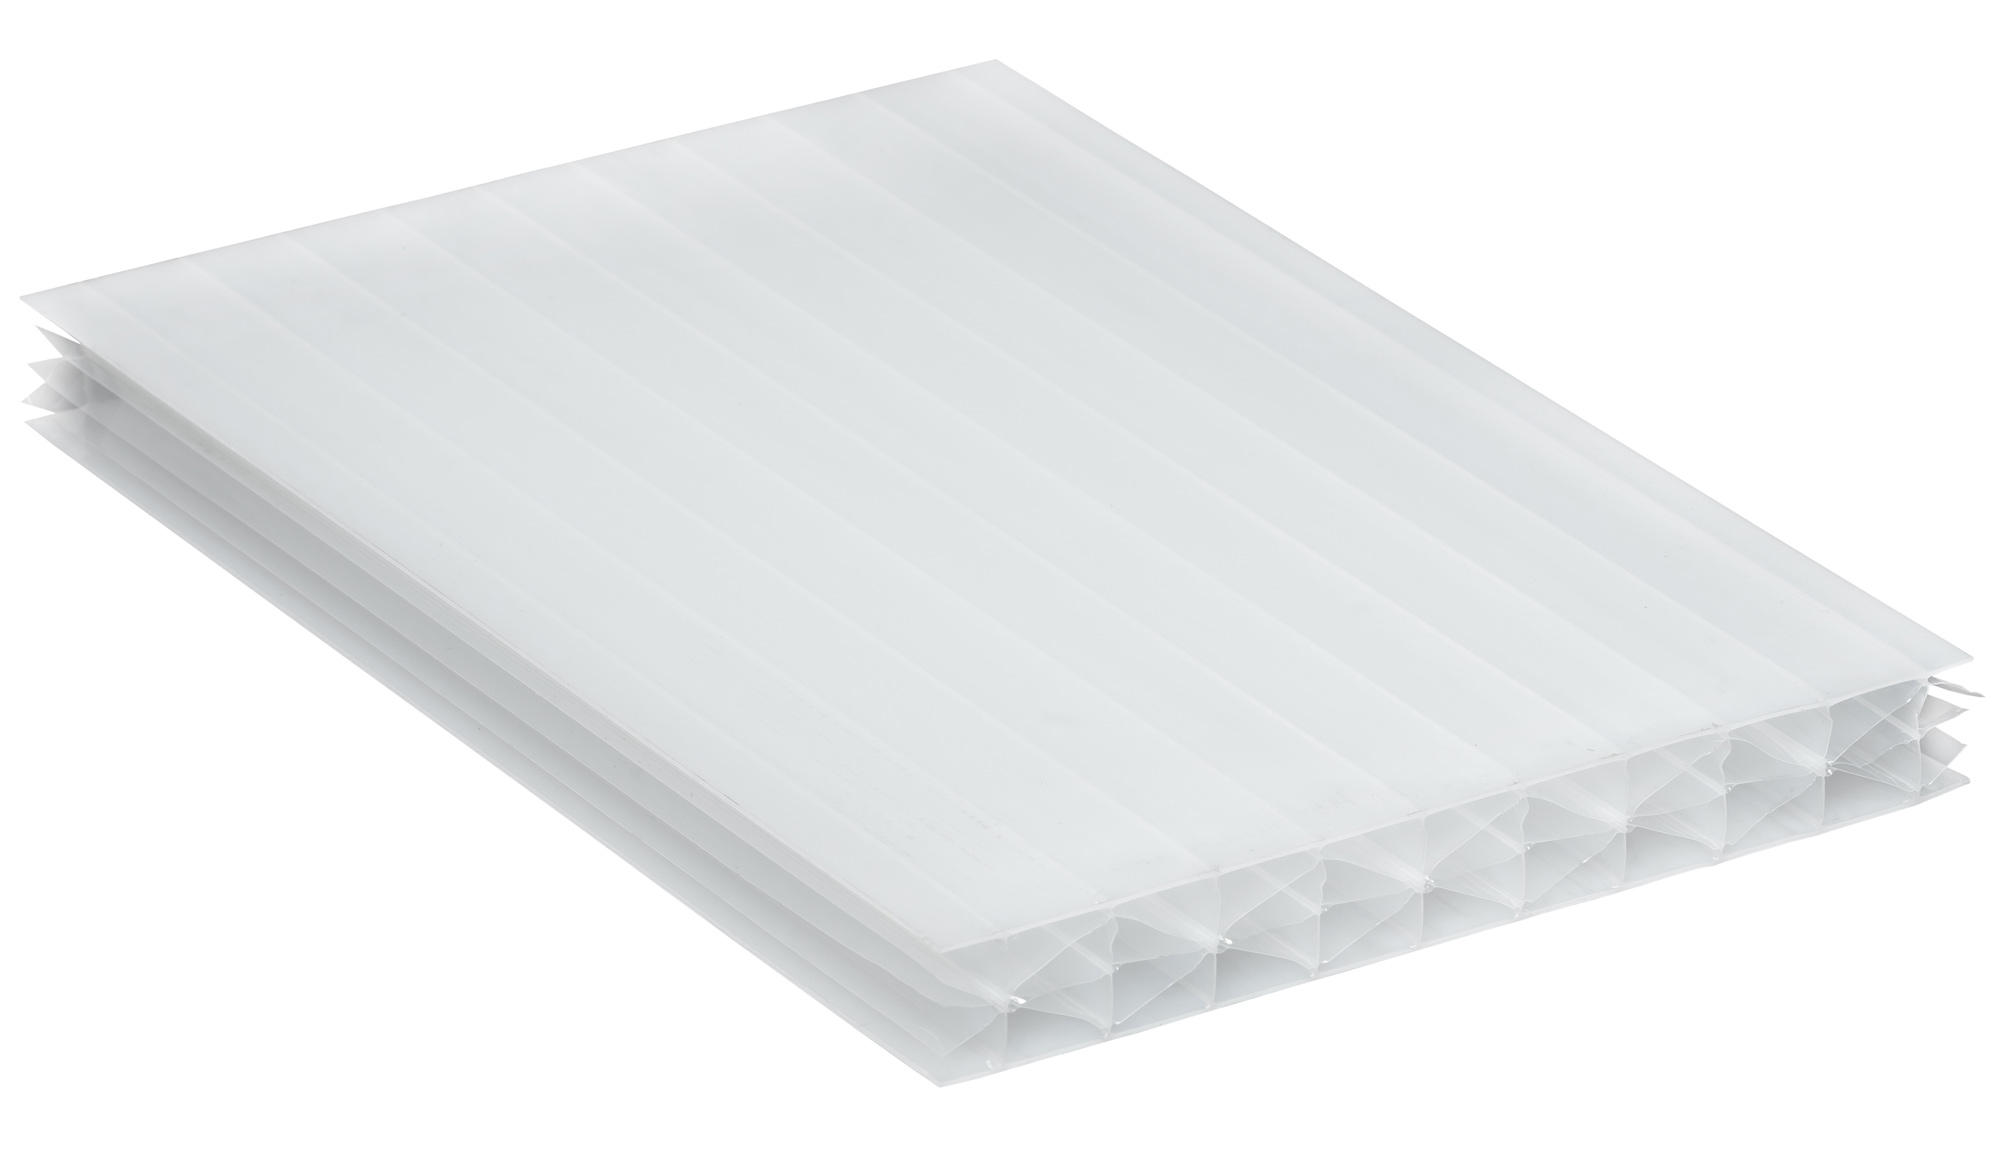 Opal Tint Polycarbonate Multiwall Roofing Sheets